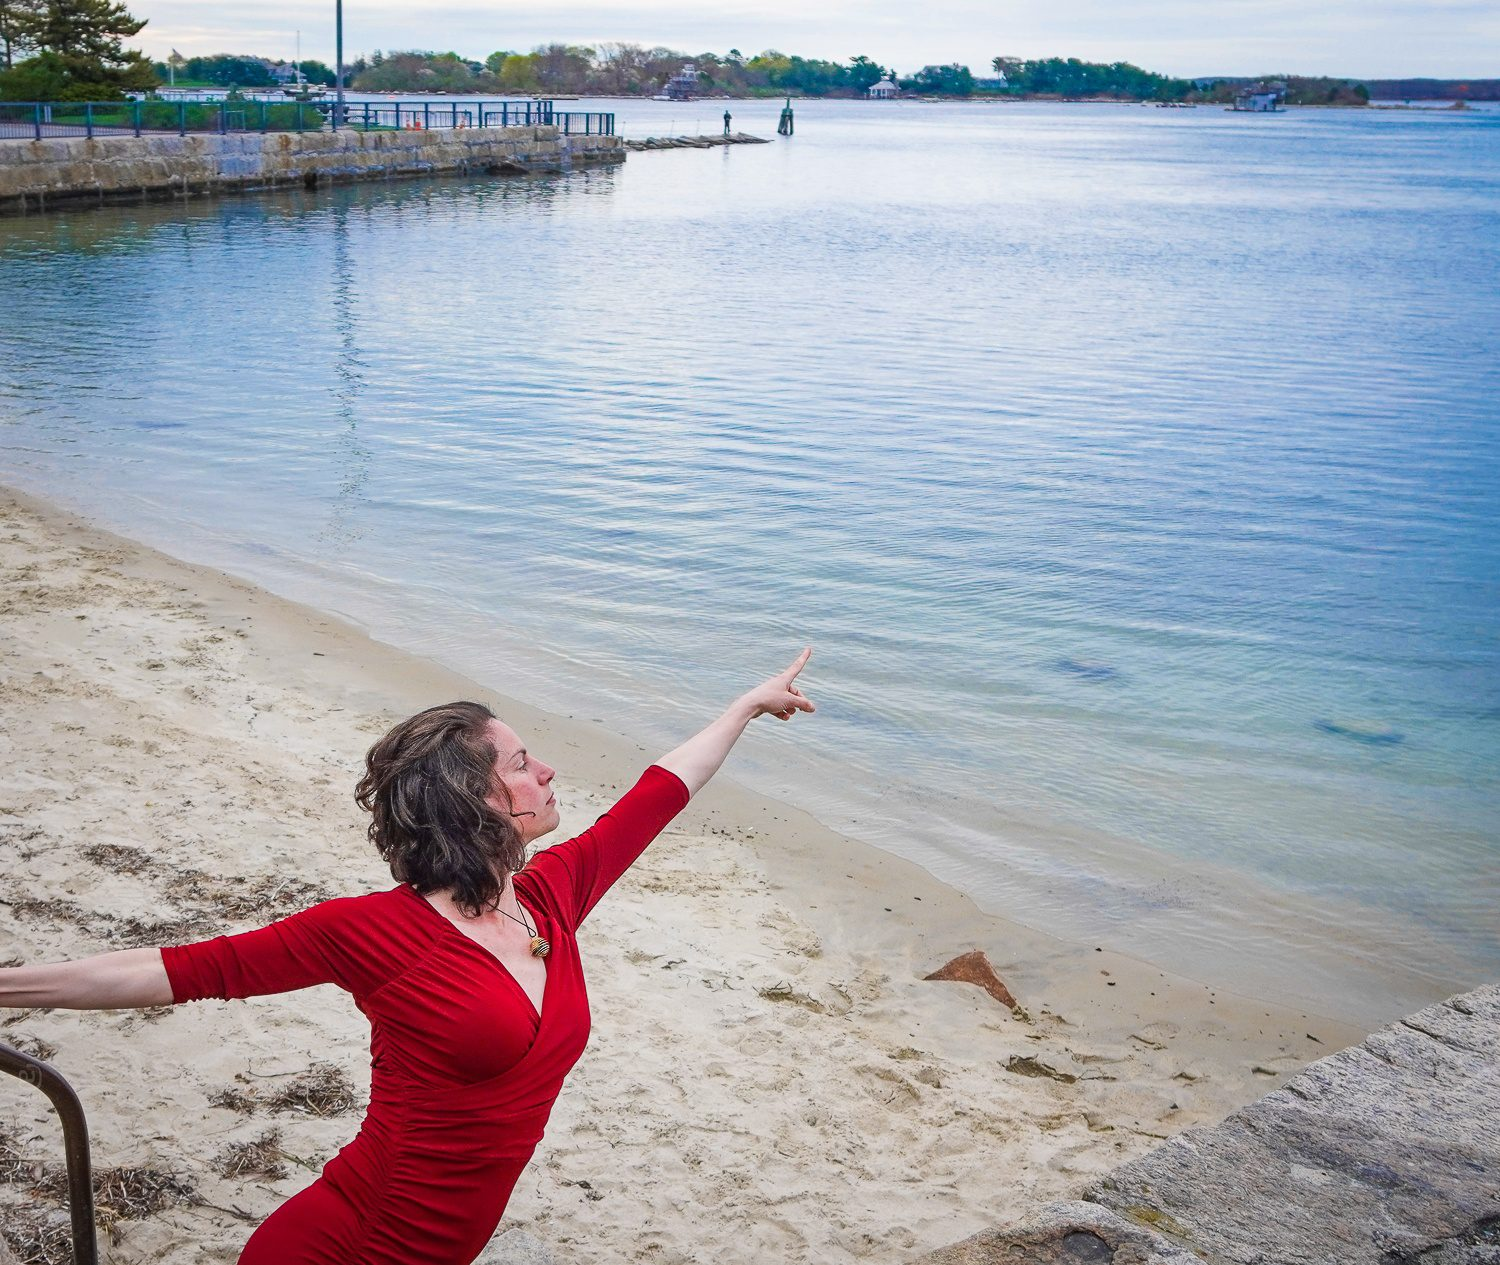 Pointing at Woods Hole beach in a red dress